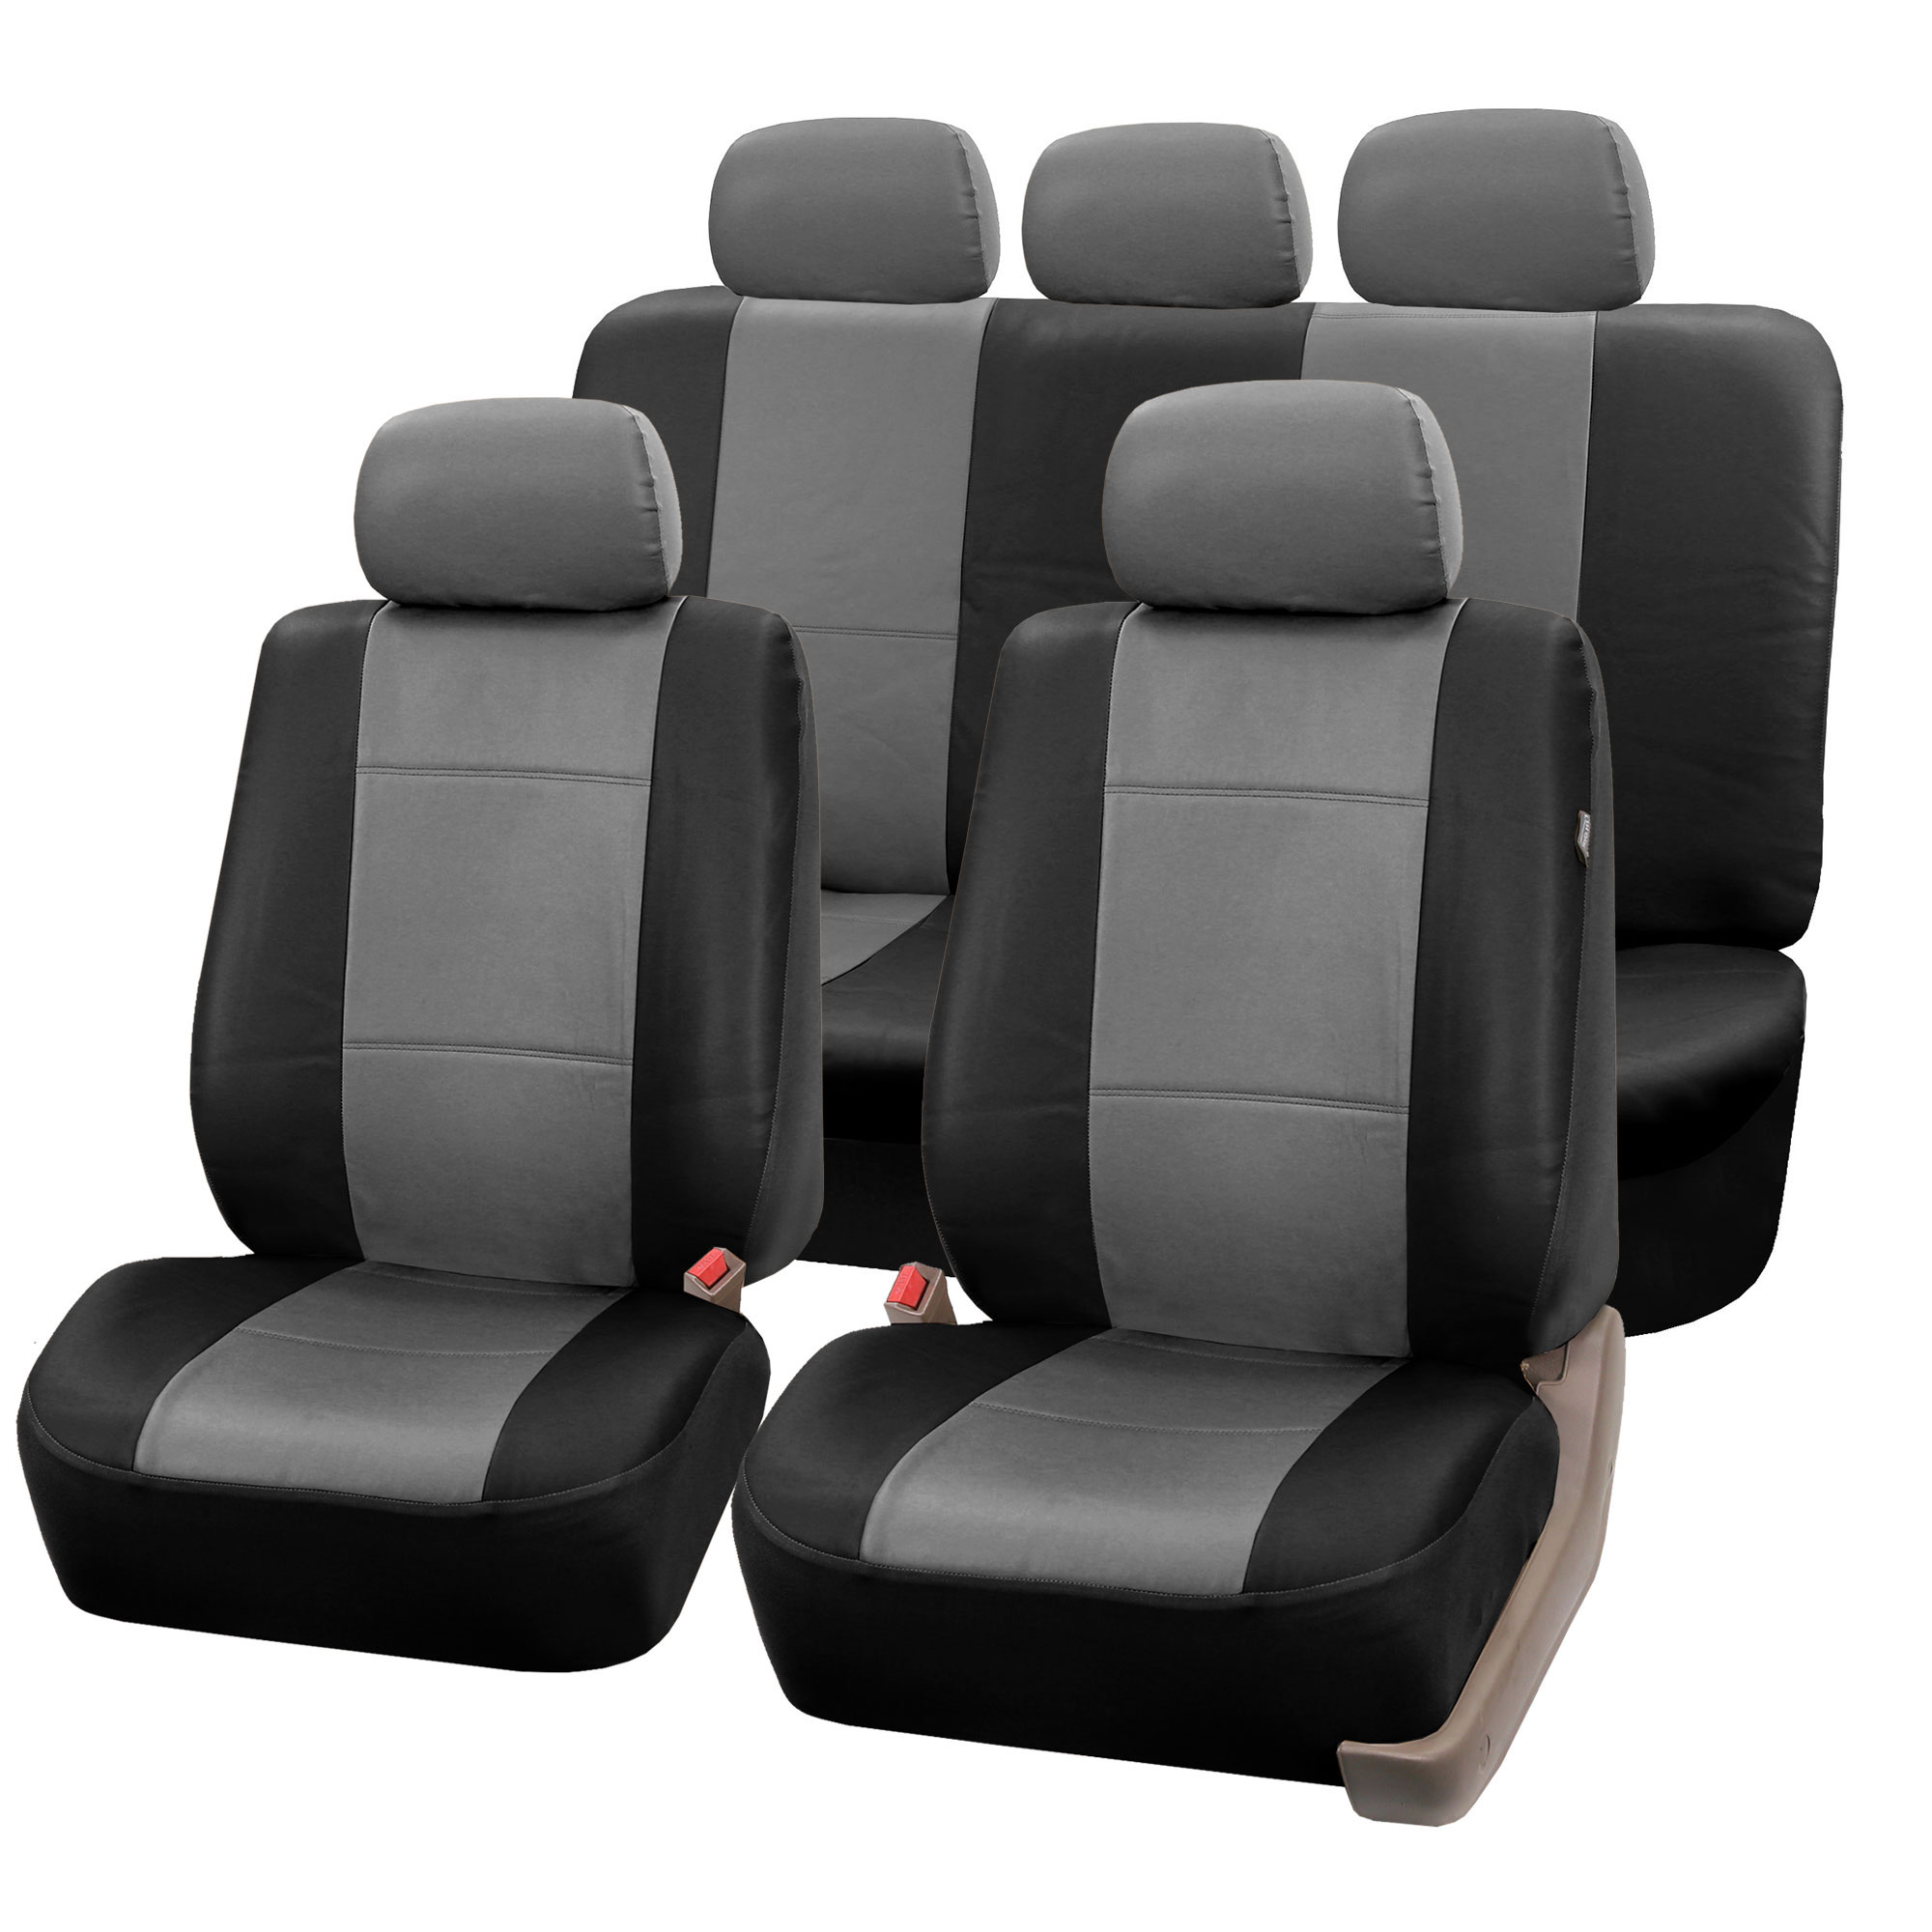 PREMIUM BLACK TAN SYNTHETIC LEATHER CAR SEAT STEERING COVERS SET FOR NISSAN